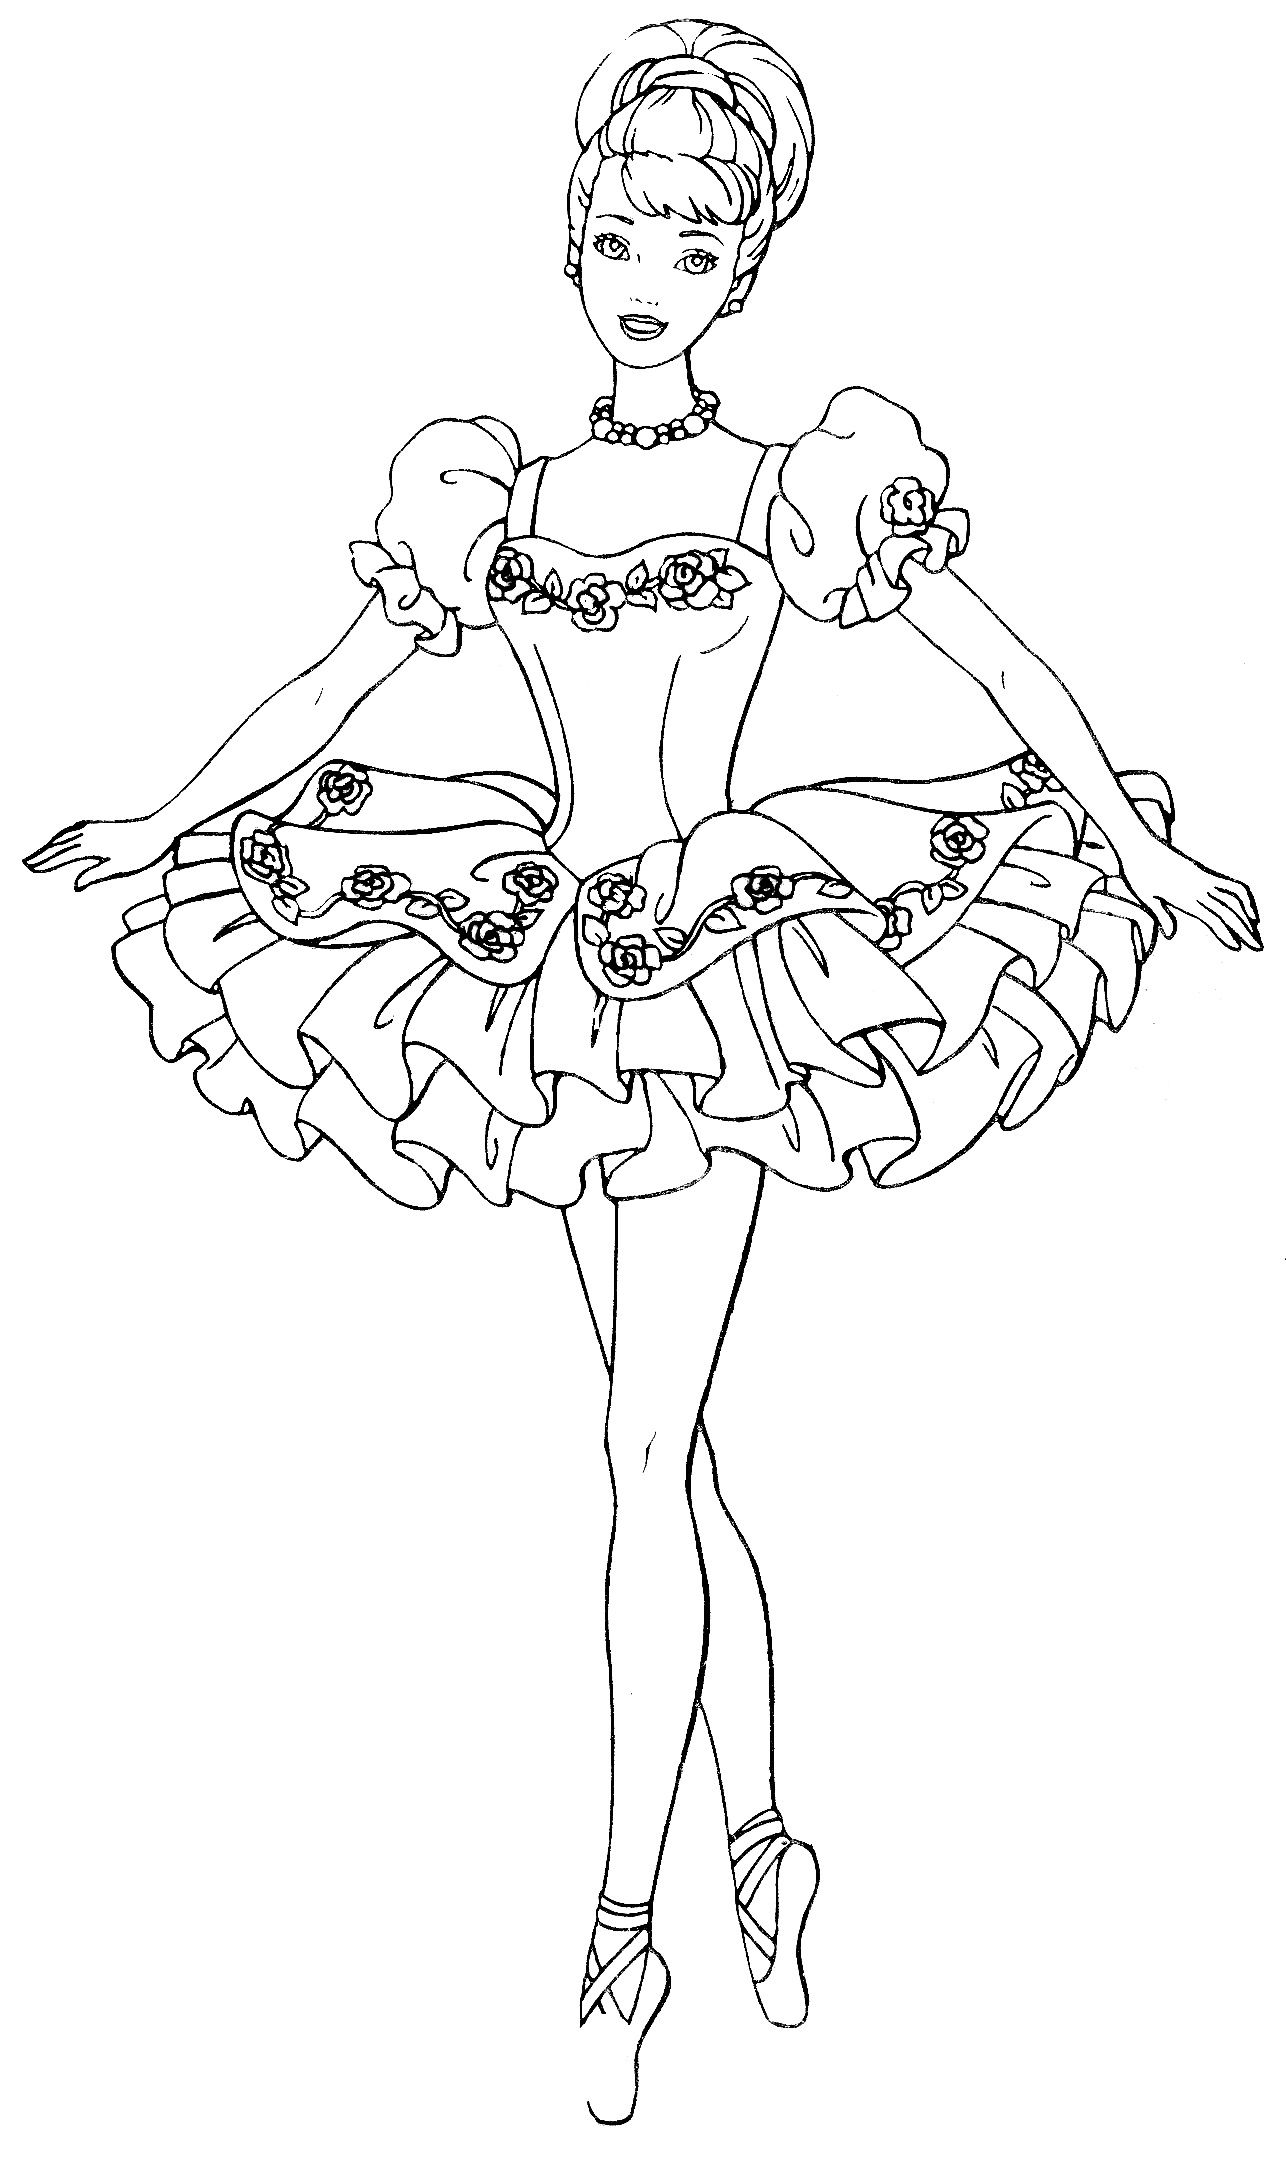 Pin By Dawn M On Barbie Coloring Part 2 Barbie Coloring Pages Disney Princess Coloring Pages Cute Coloring Pages